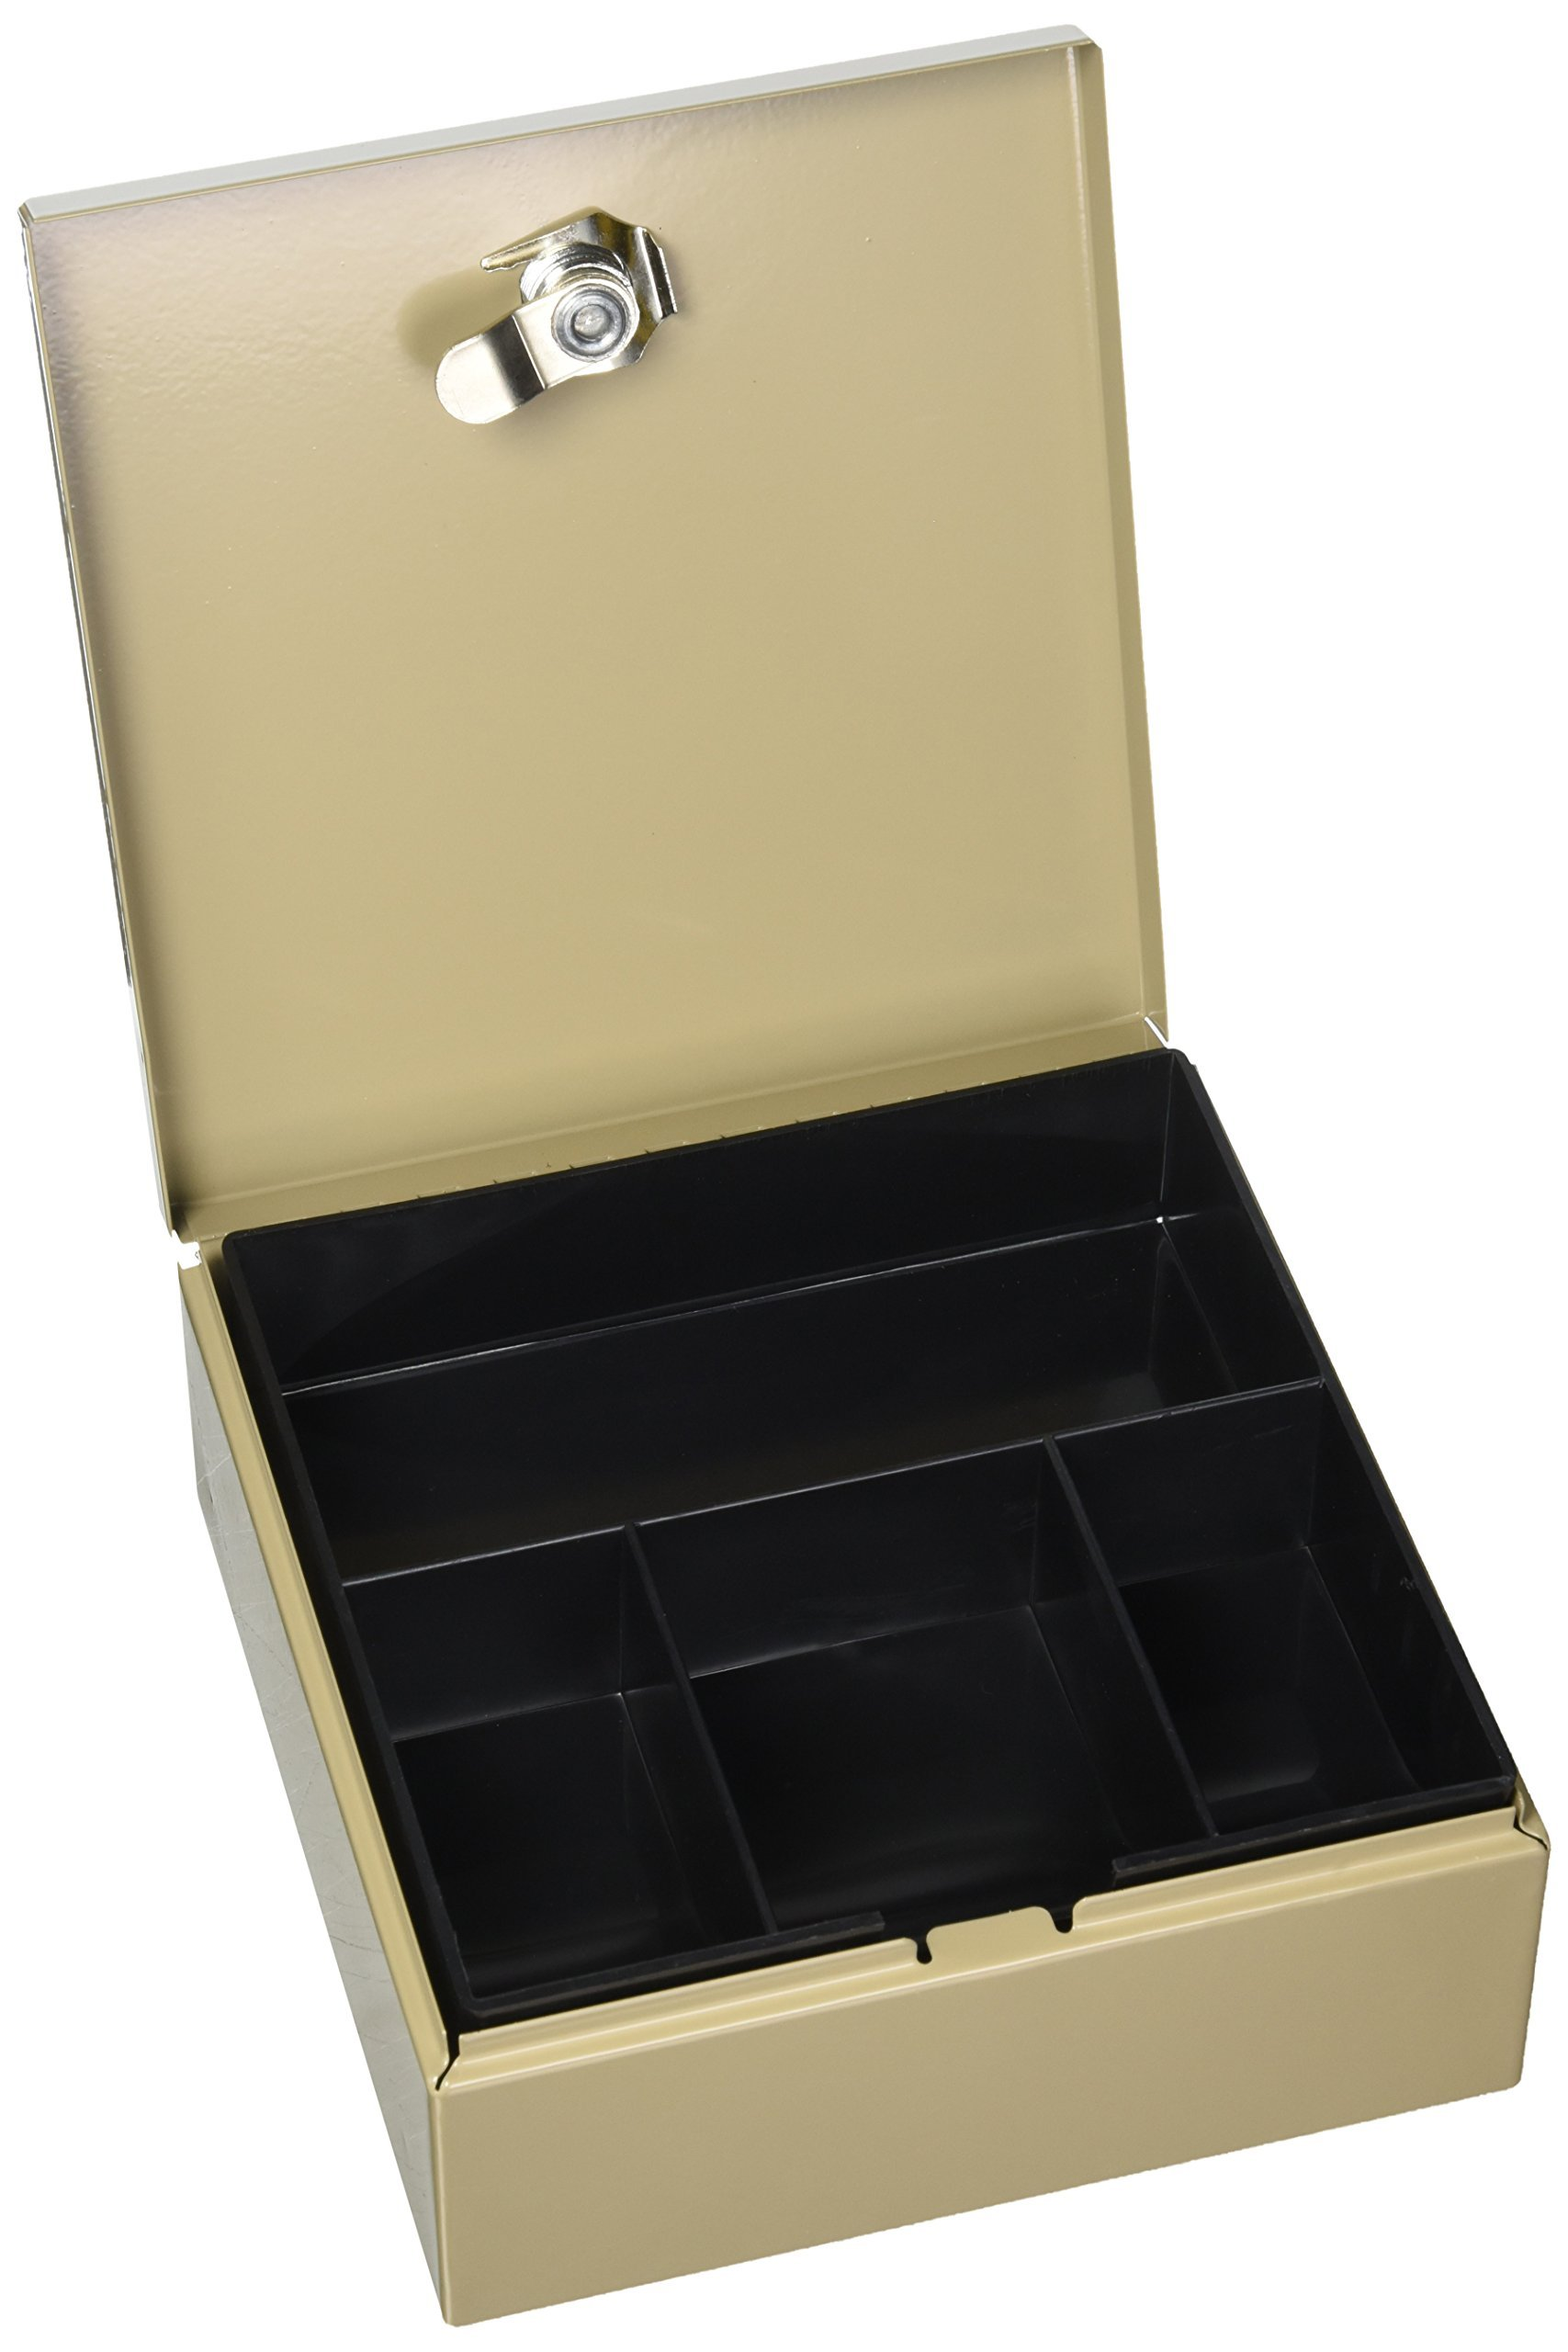 PM Company Securit Personal 2 In 1 Key Cabiner/Drawer Safe, 6.75 X 6.875 X 3 Inches, Pebble Beige (04982)